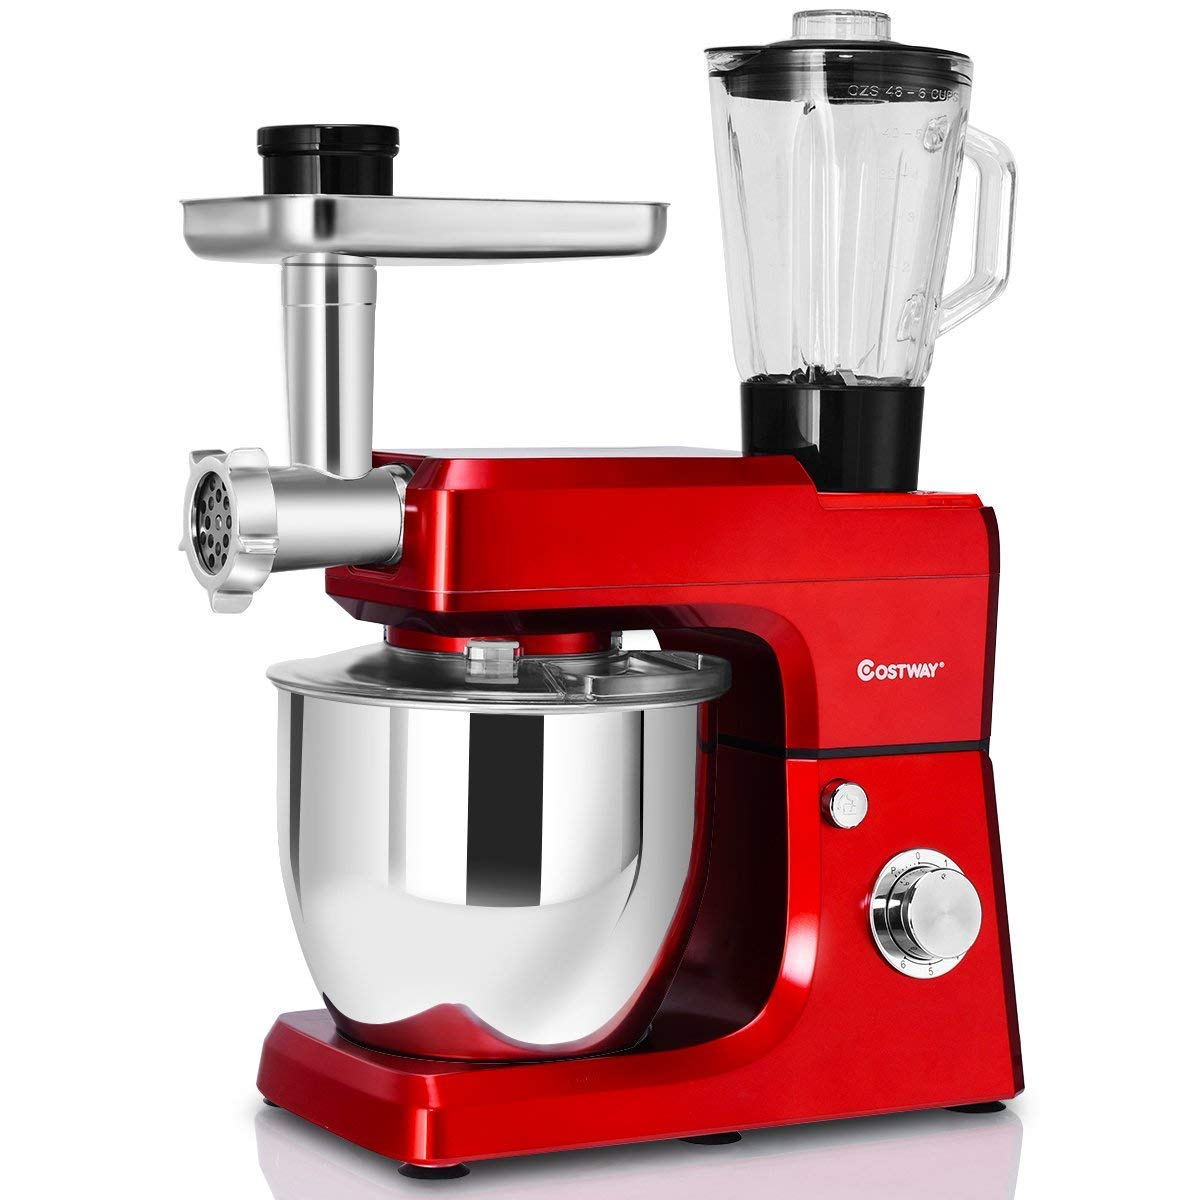 COSTWAY 3 In 1 Upgraded Stand Mixer with Stainless Steel Bowl Blender Meat Grinder Sausage Stuffer(RED)